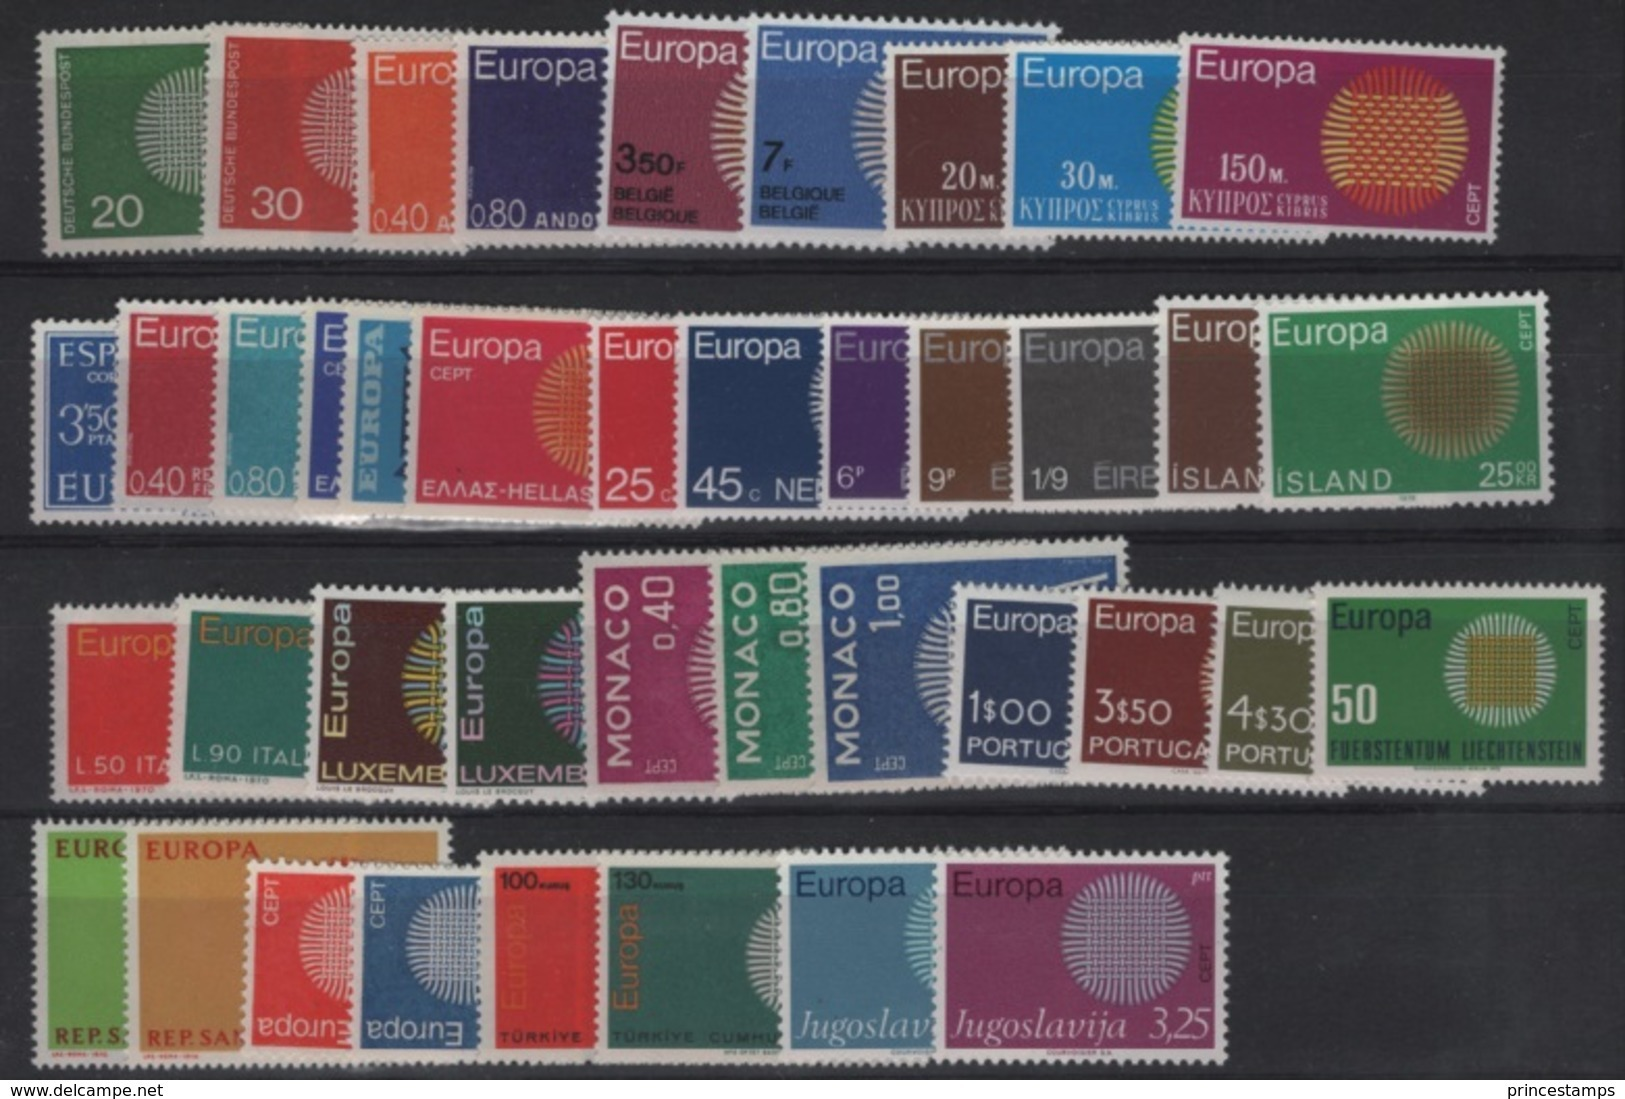 Europa - Europe CEPT (1970 Complet) / Nice - MNH - 1970